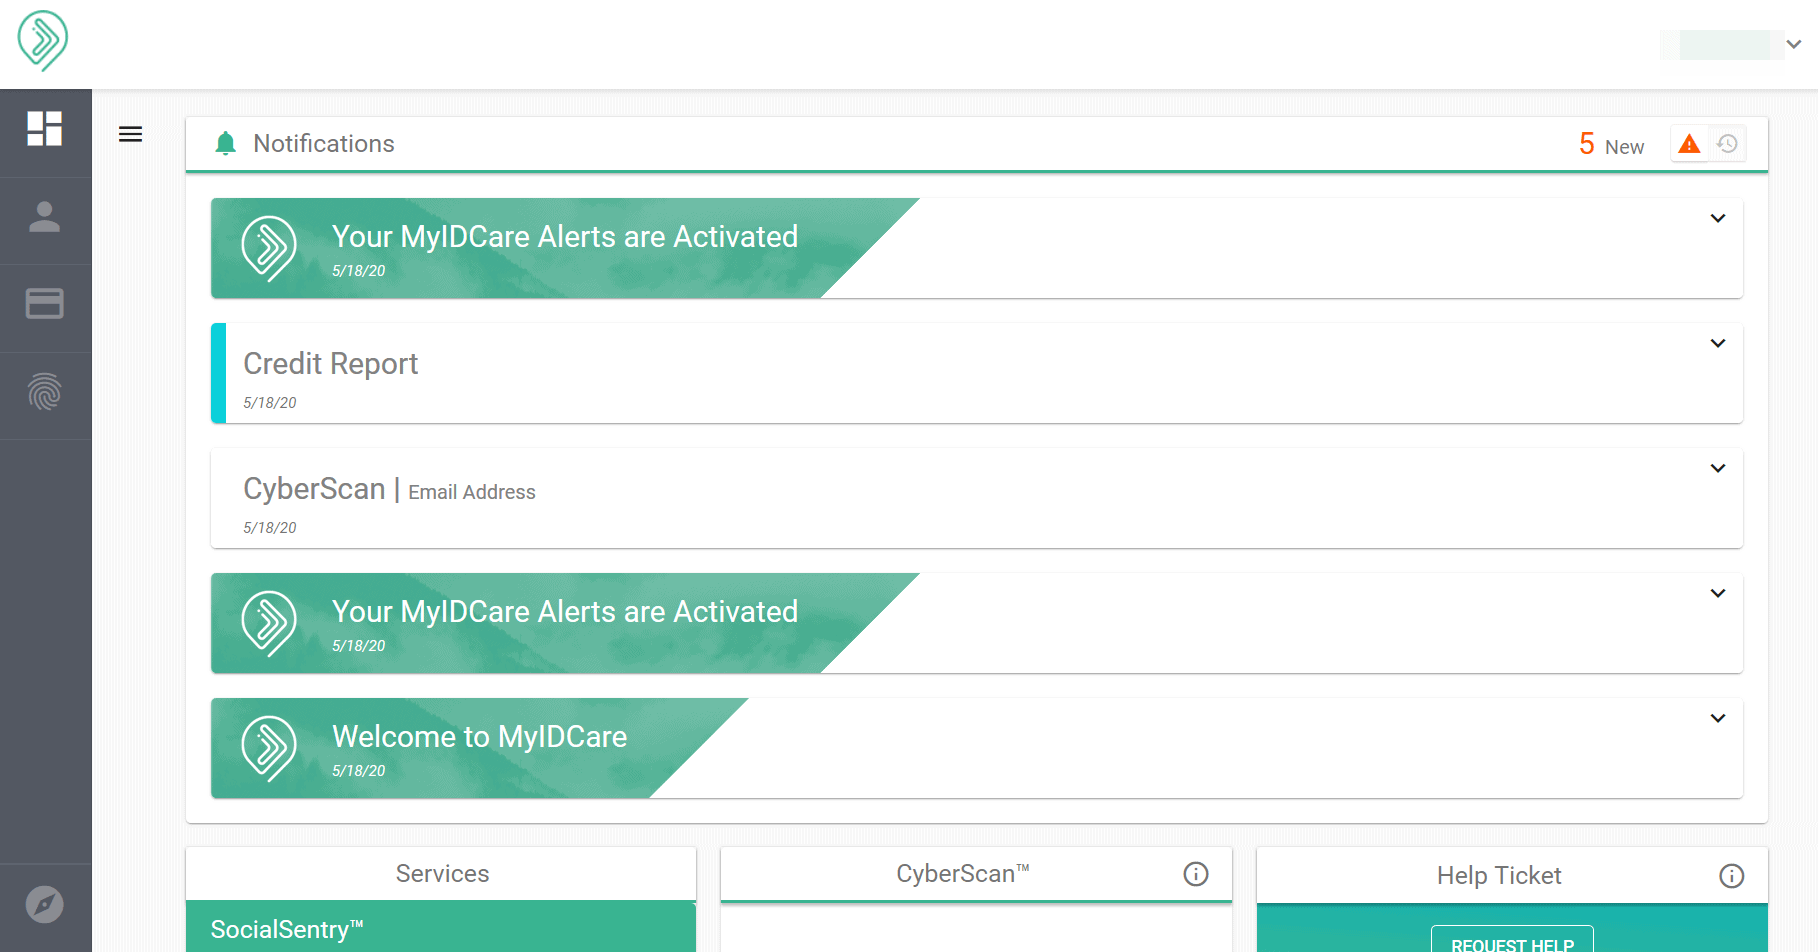 MyIDCare - Main Notifications Screen